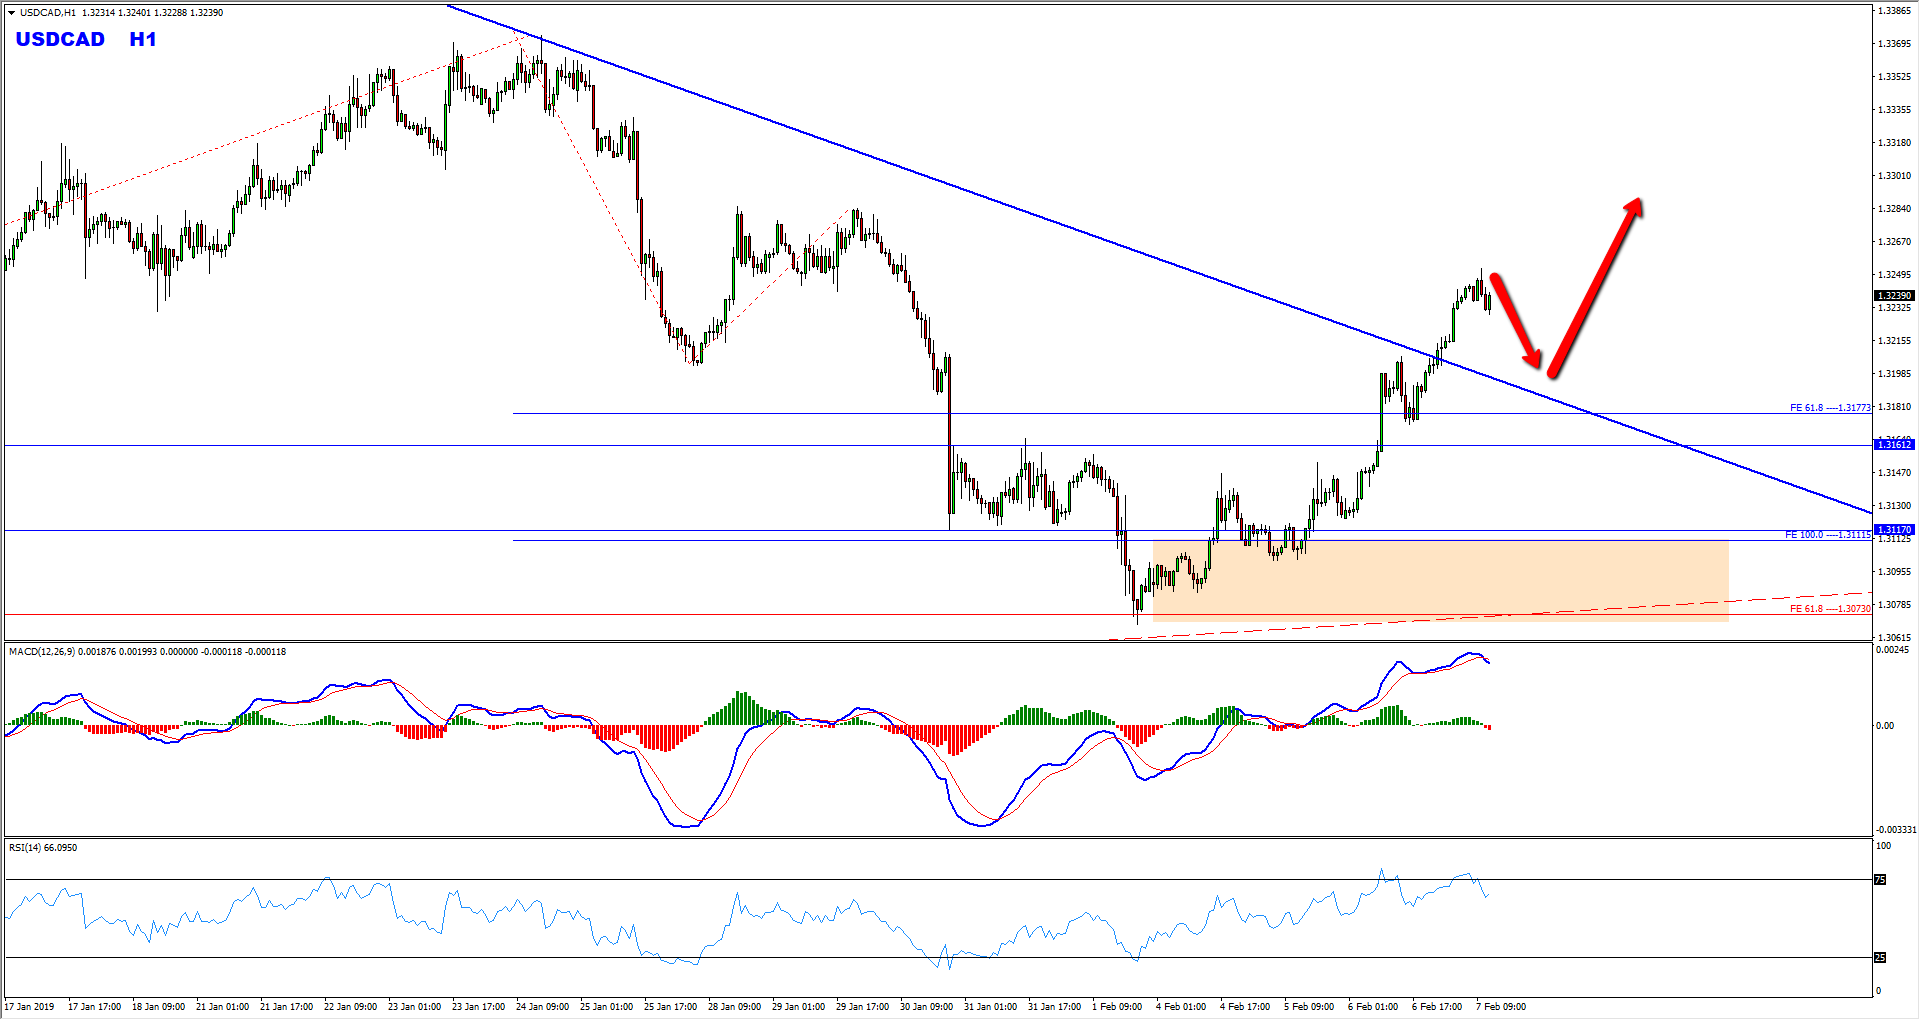 USDCAD Short Term Bullish Opportunity Forming At The Moment